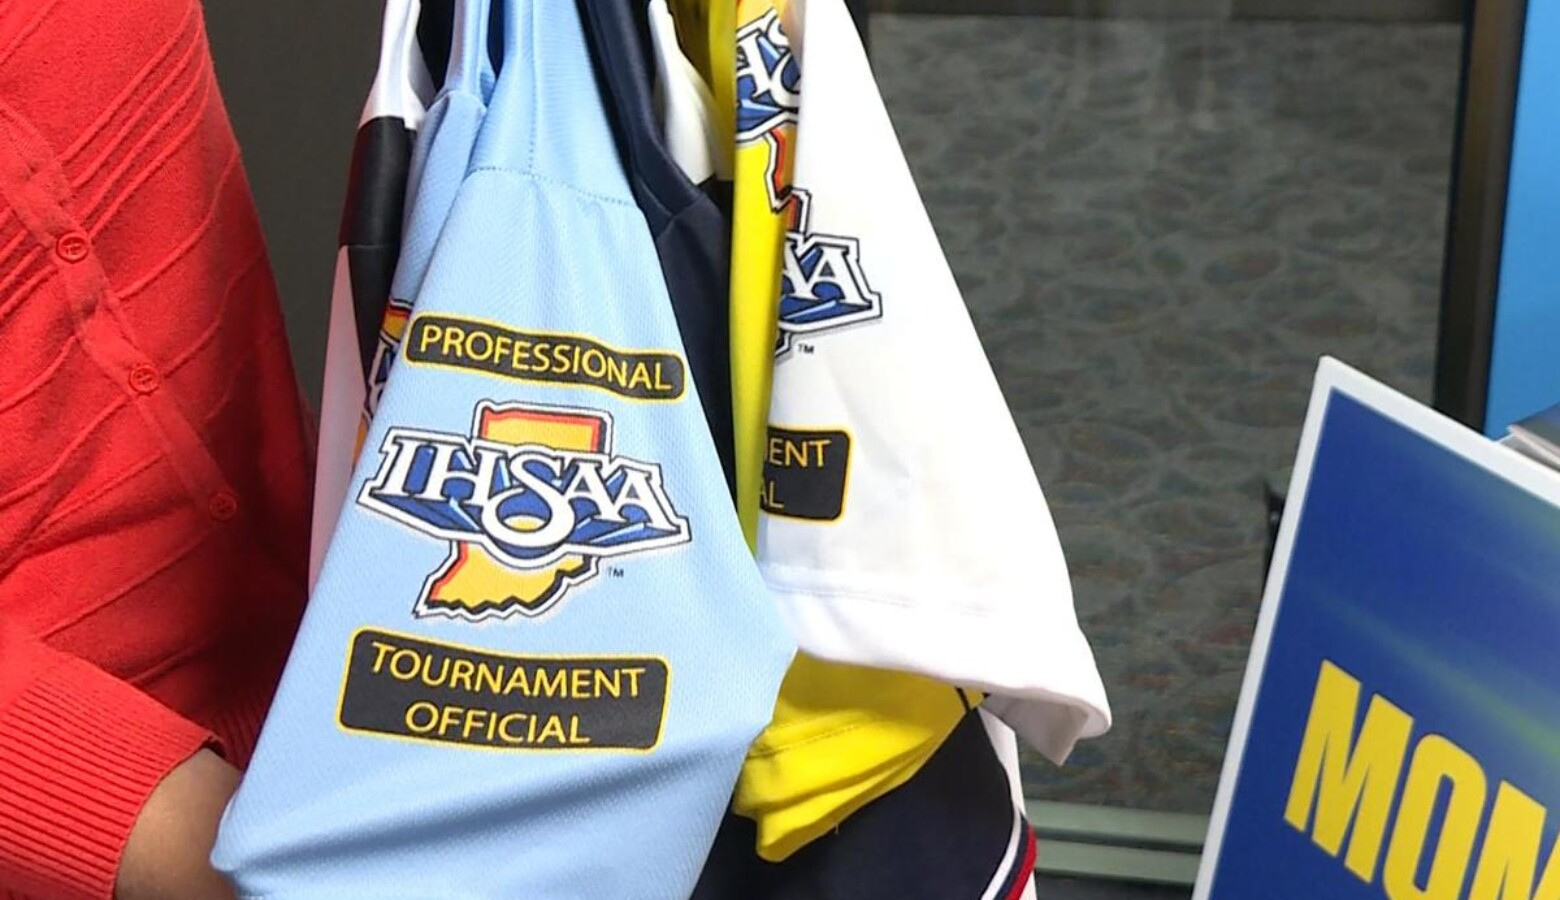 Some sports officials decided to take a break during the fall sports season because of the COVID-19 pandemic, but IHSAA Commissioner Paul Neidig says a lack of officials hasn't caused any games to be canceled. (Jeanie Lindsay/IPB News)